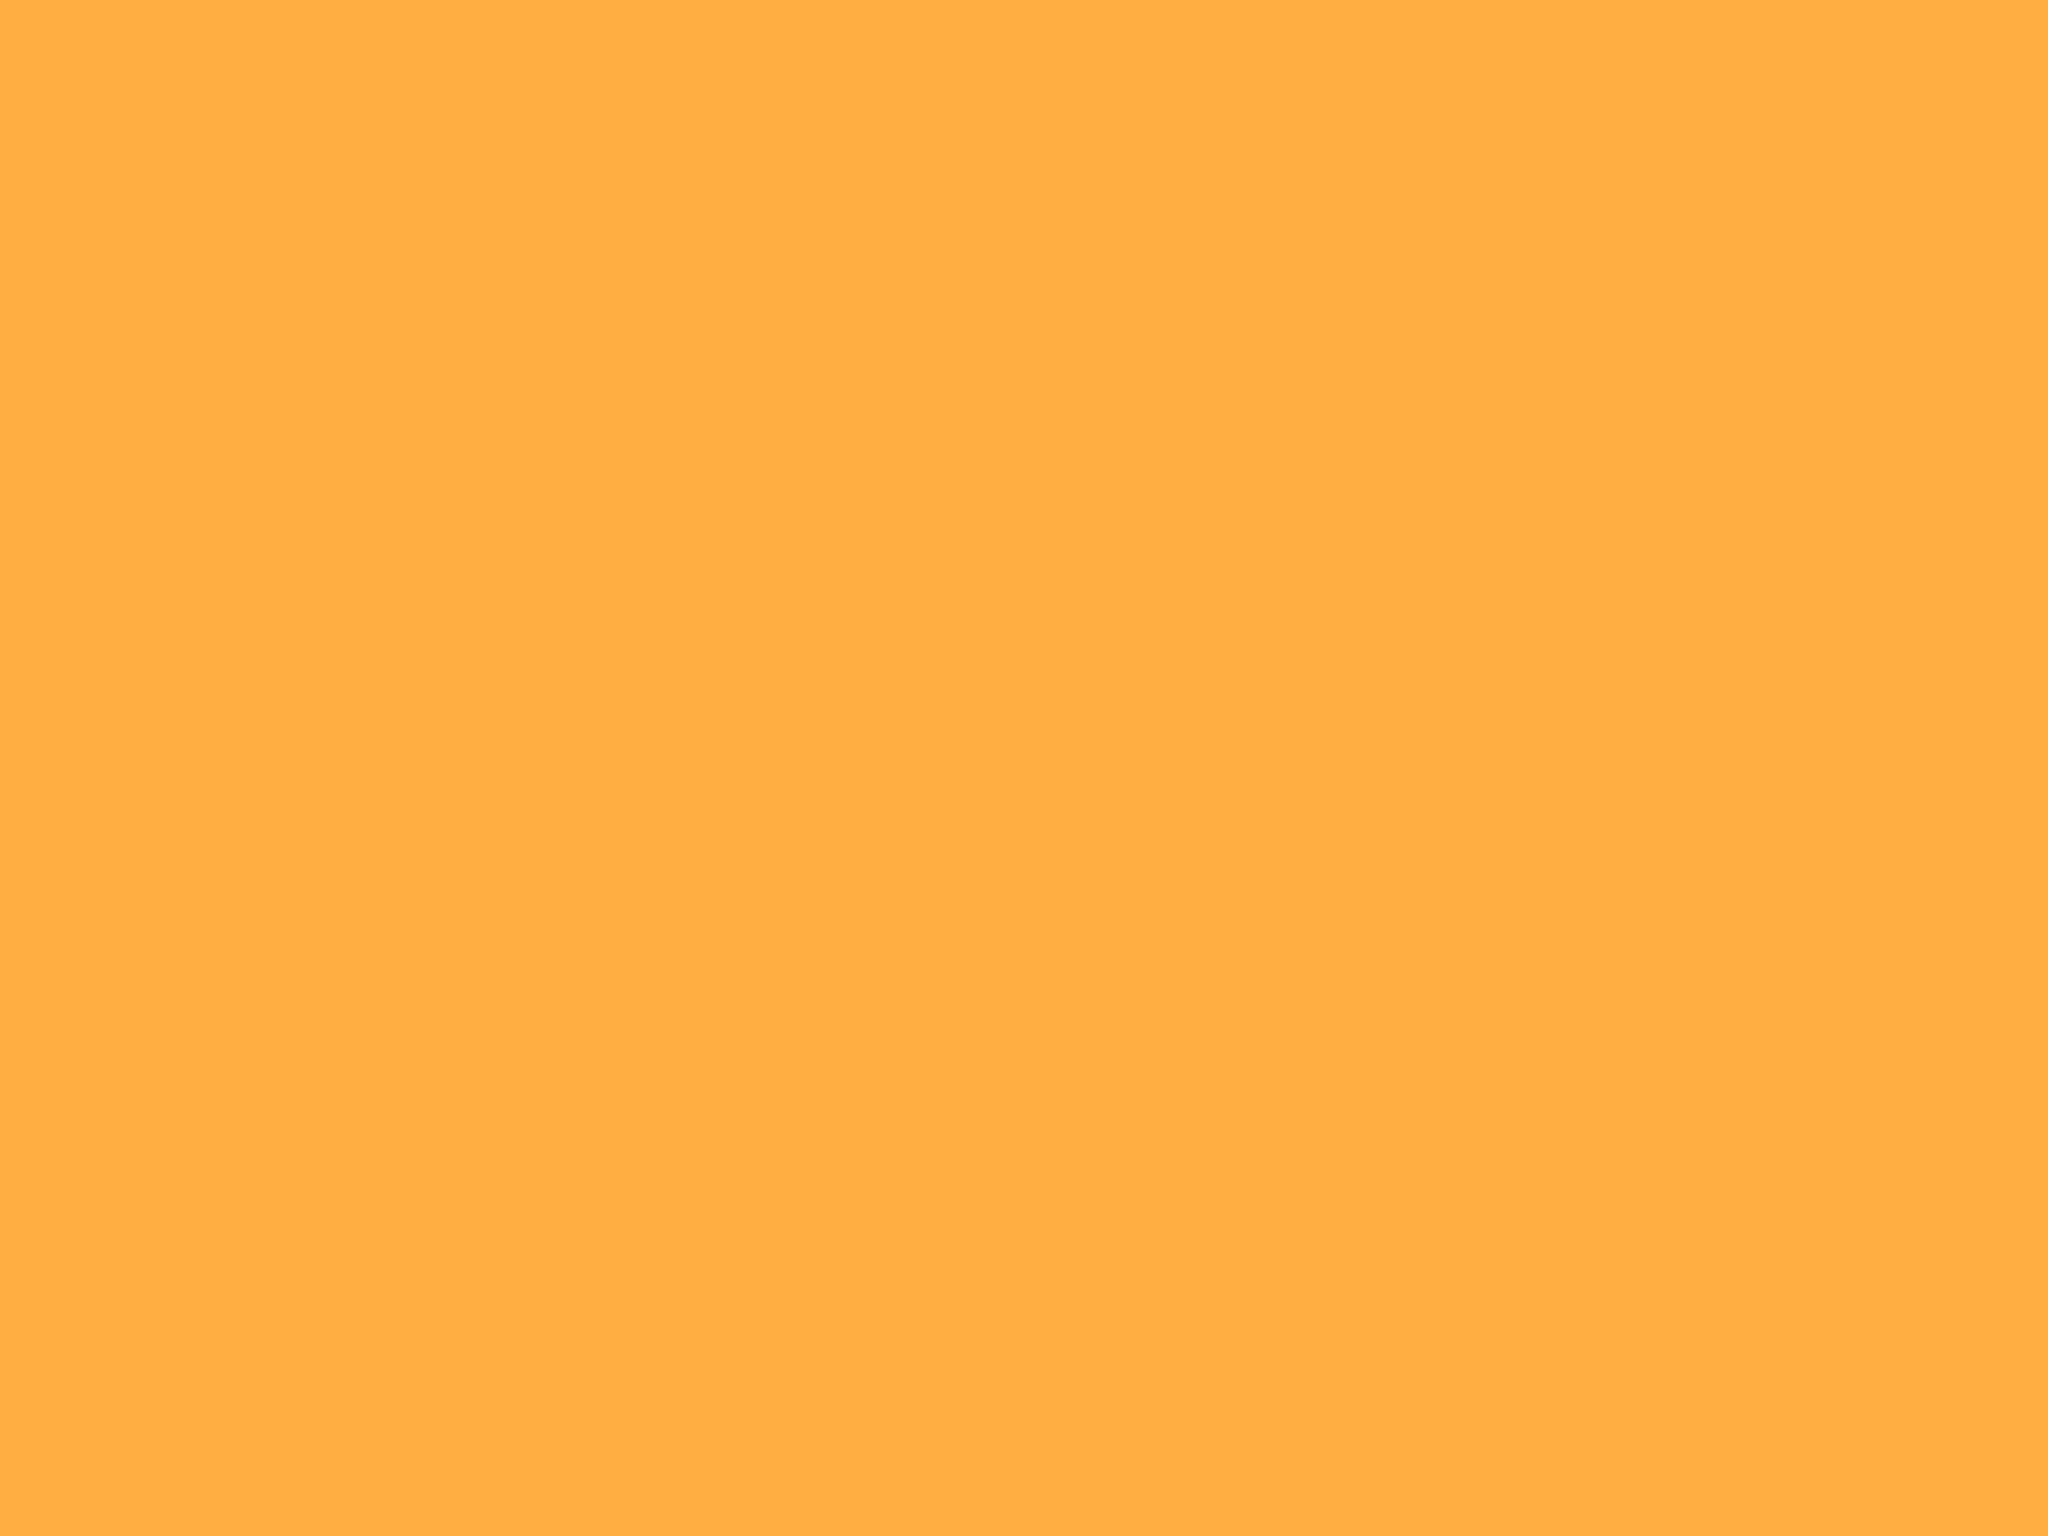 2048x1536 Yellow Orange Solid Color Background